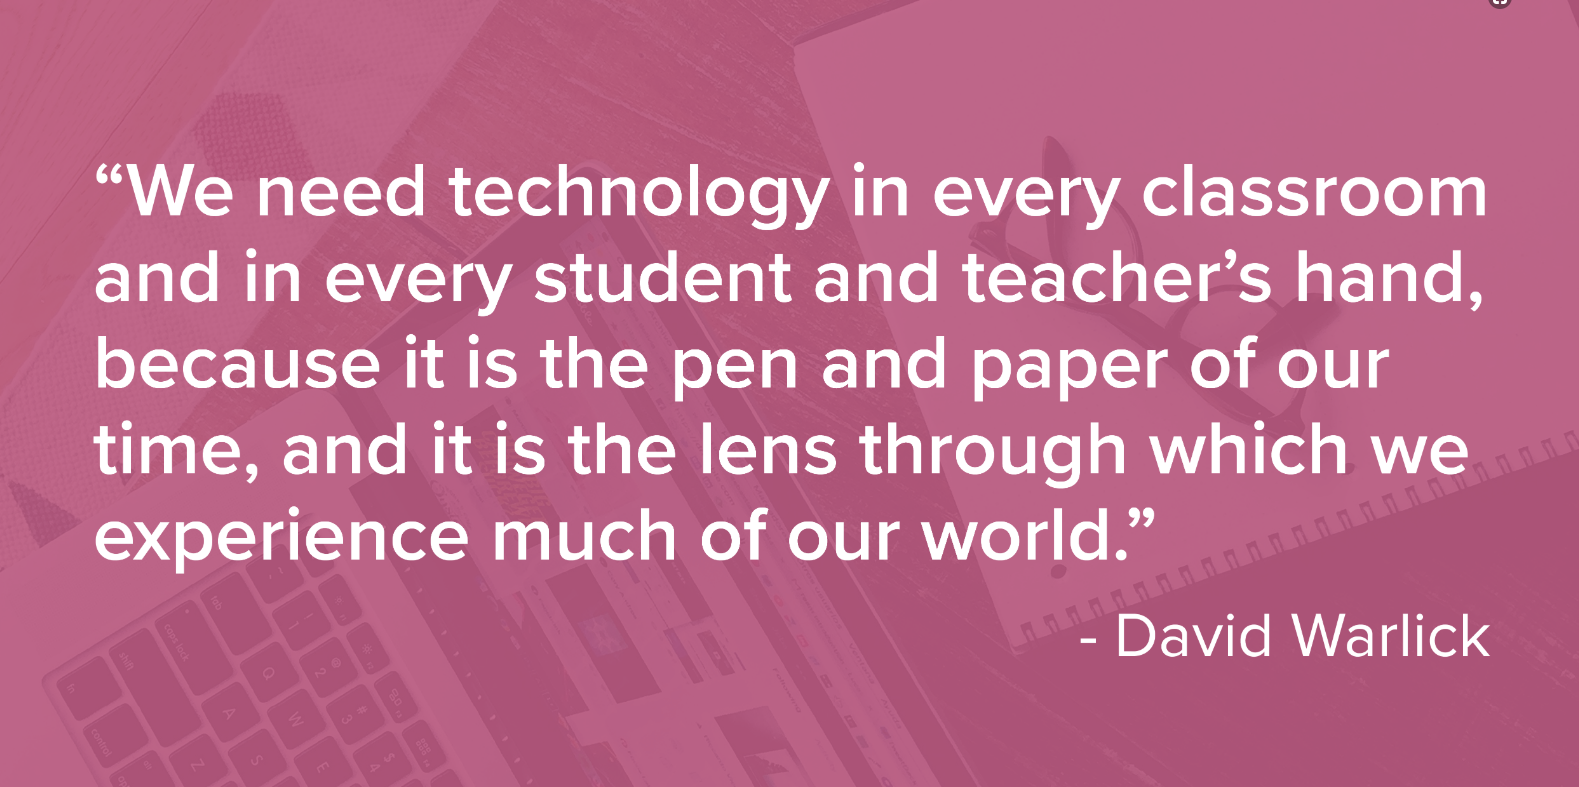 David Warlick quote about technology in the classroom over a pink background